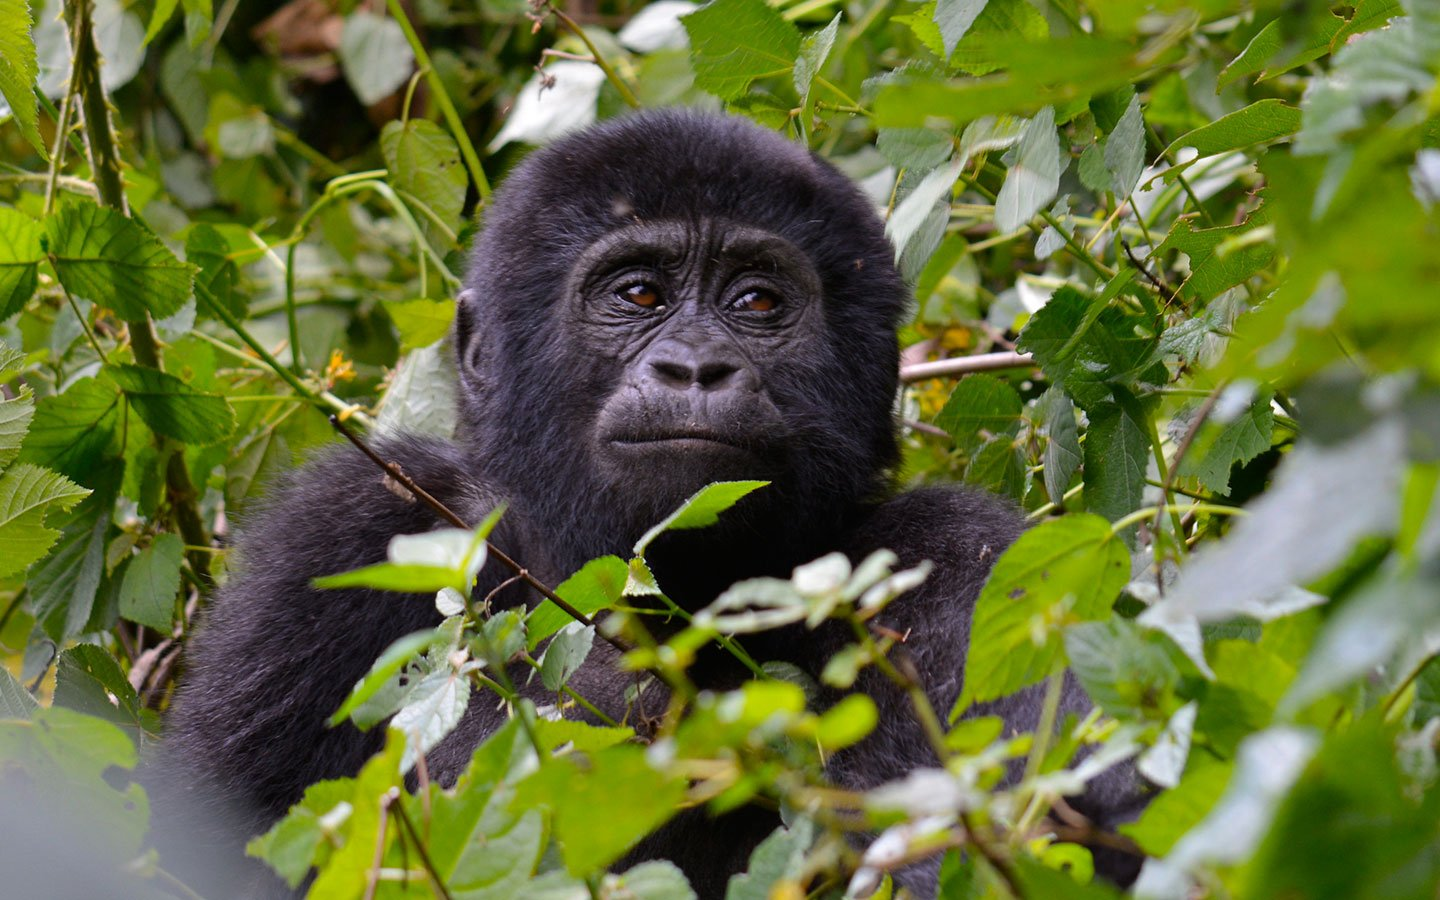 gorilla safaris in Uganda - About Uganda Gorillas